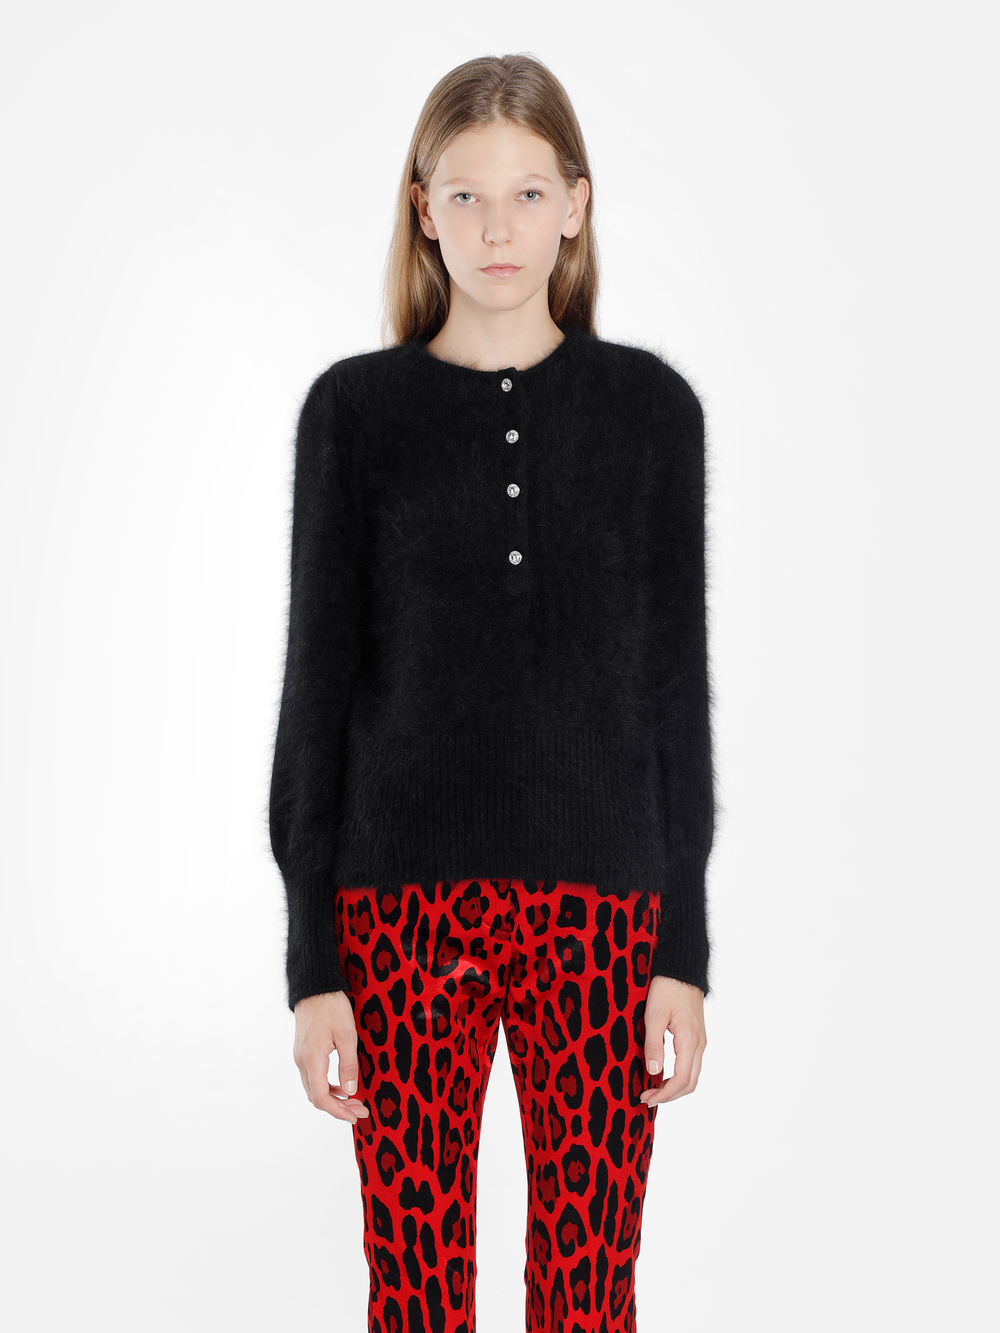 Tom Ford Knits TOM FORD KNITWEAR